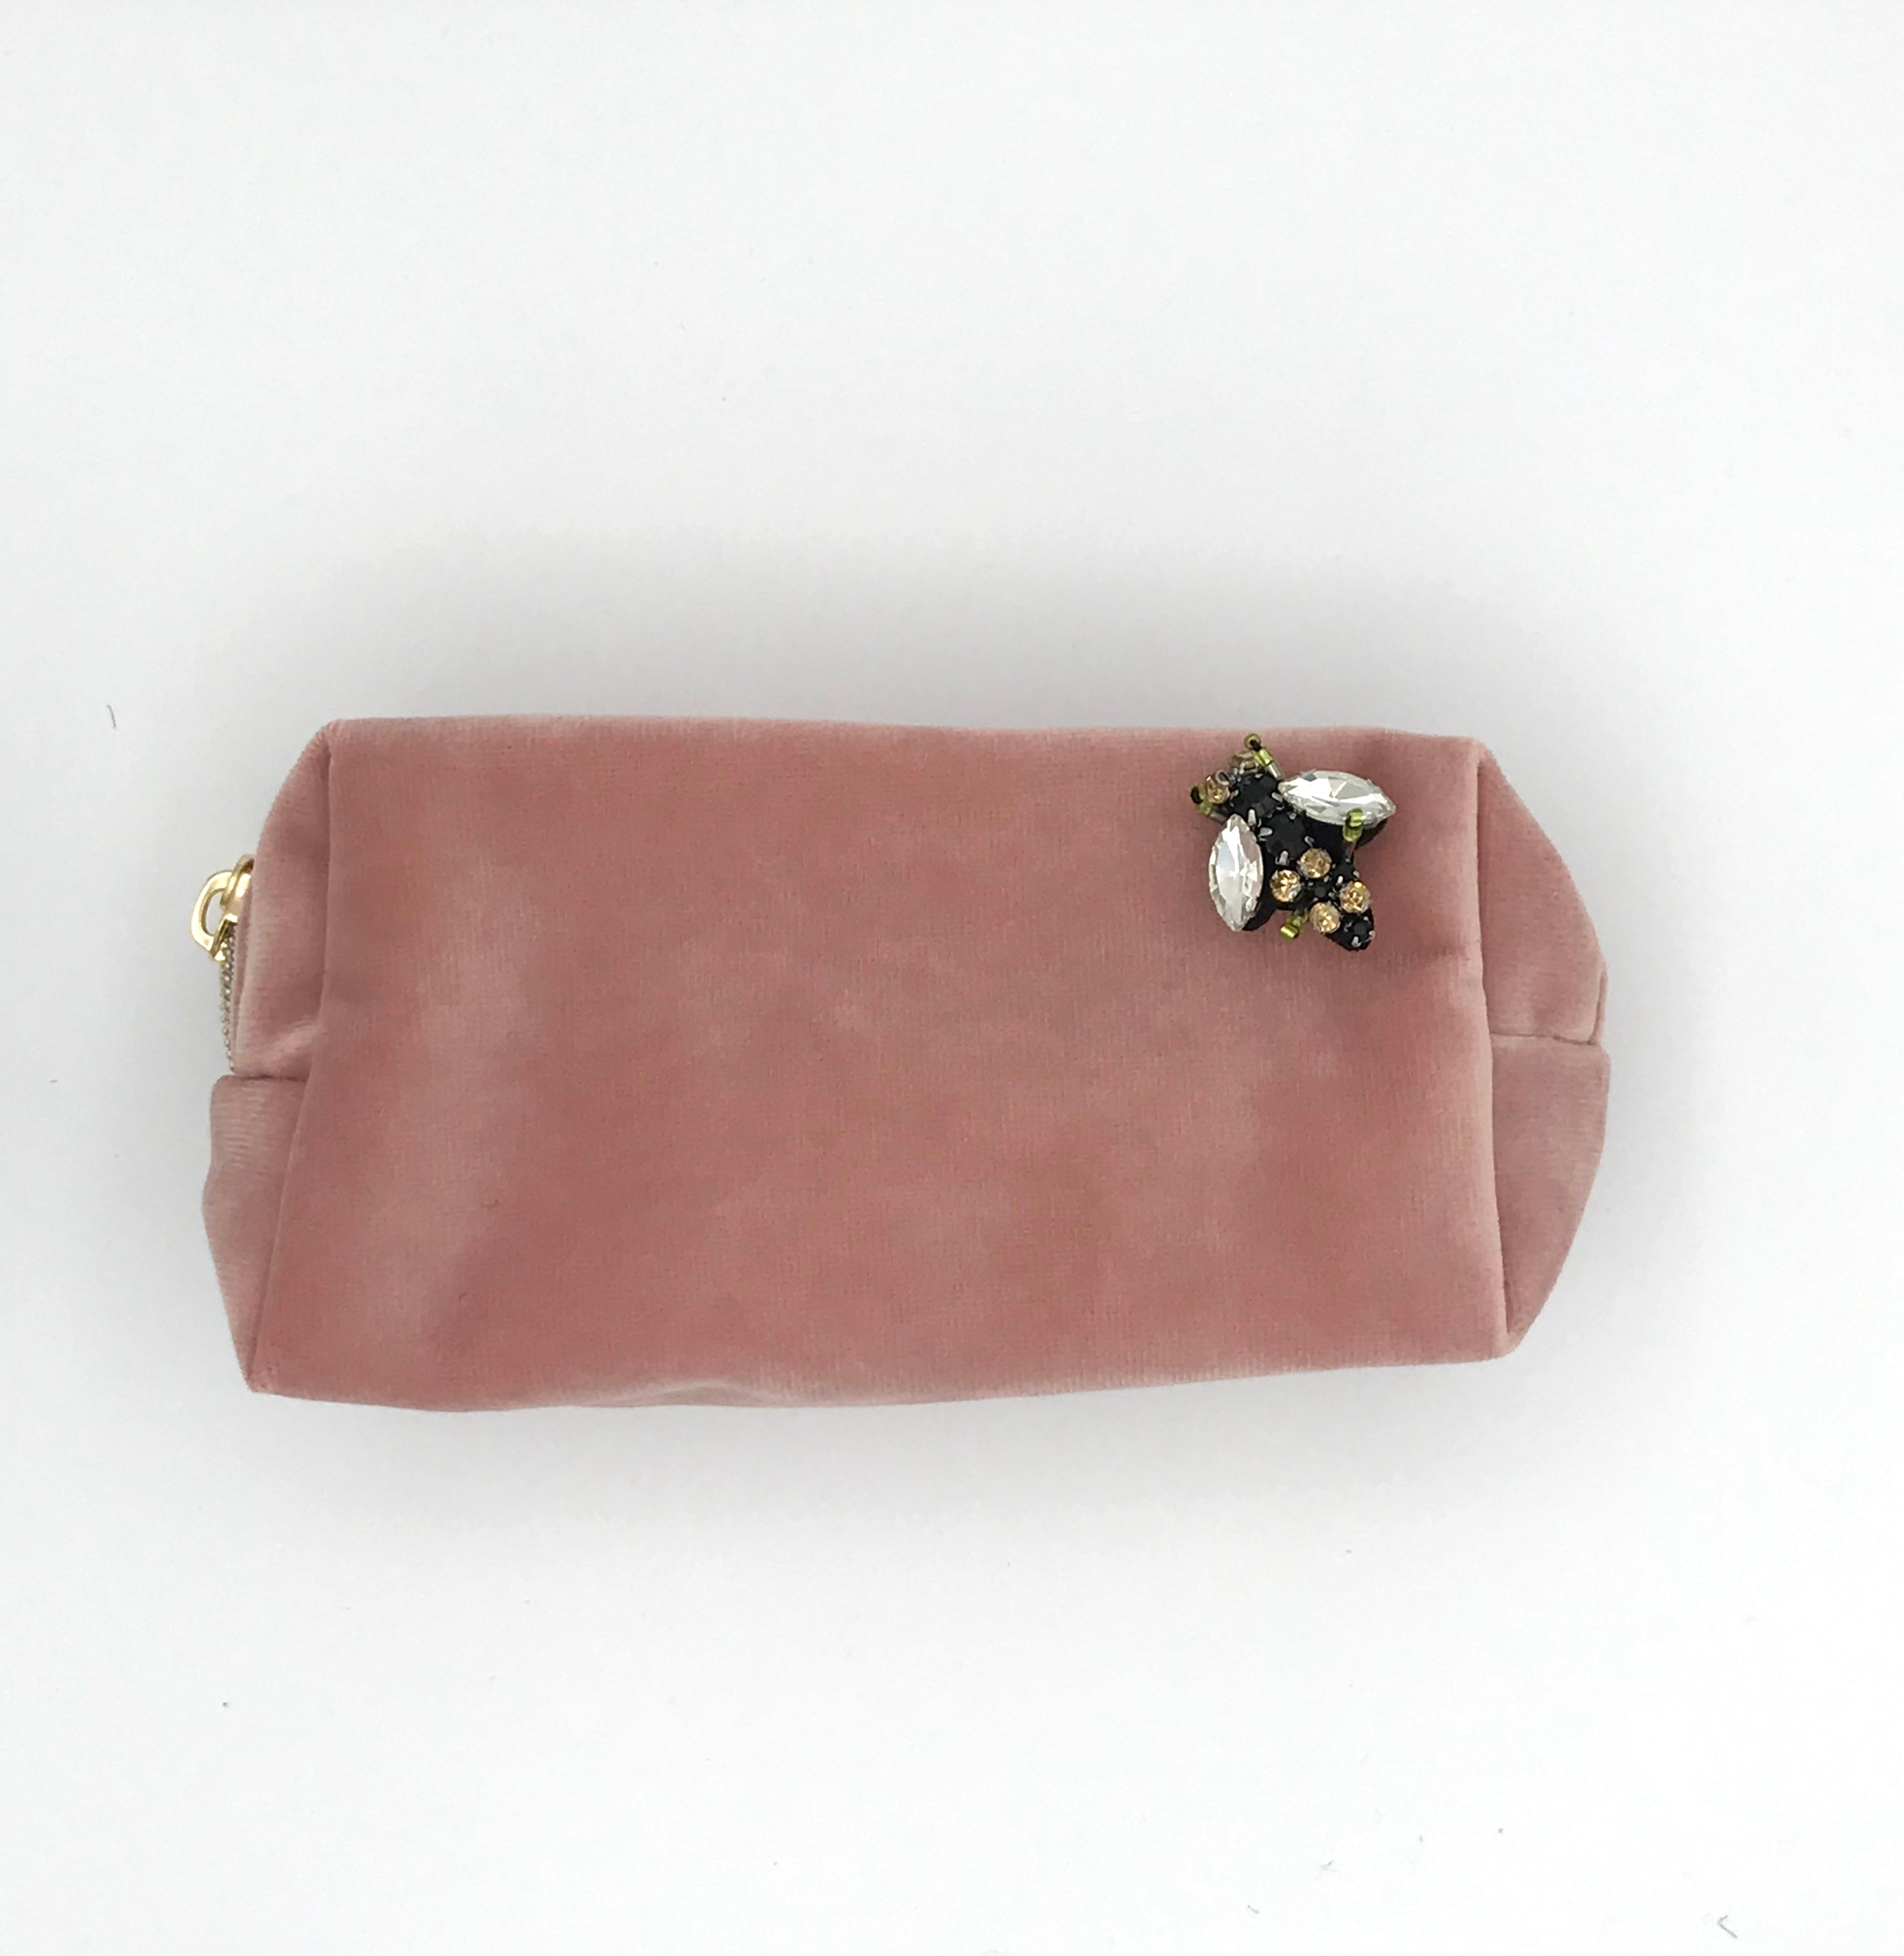 Velvet make-up bag in powder pink with a bumblebee pin